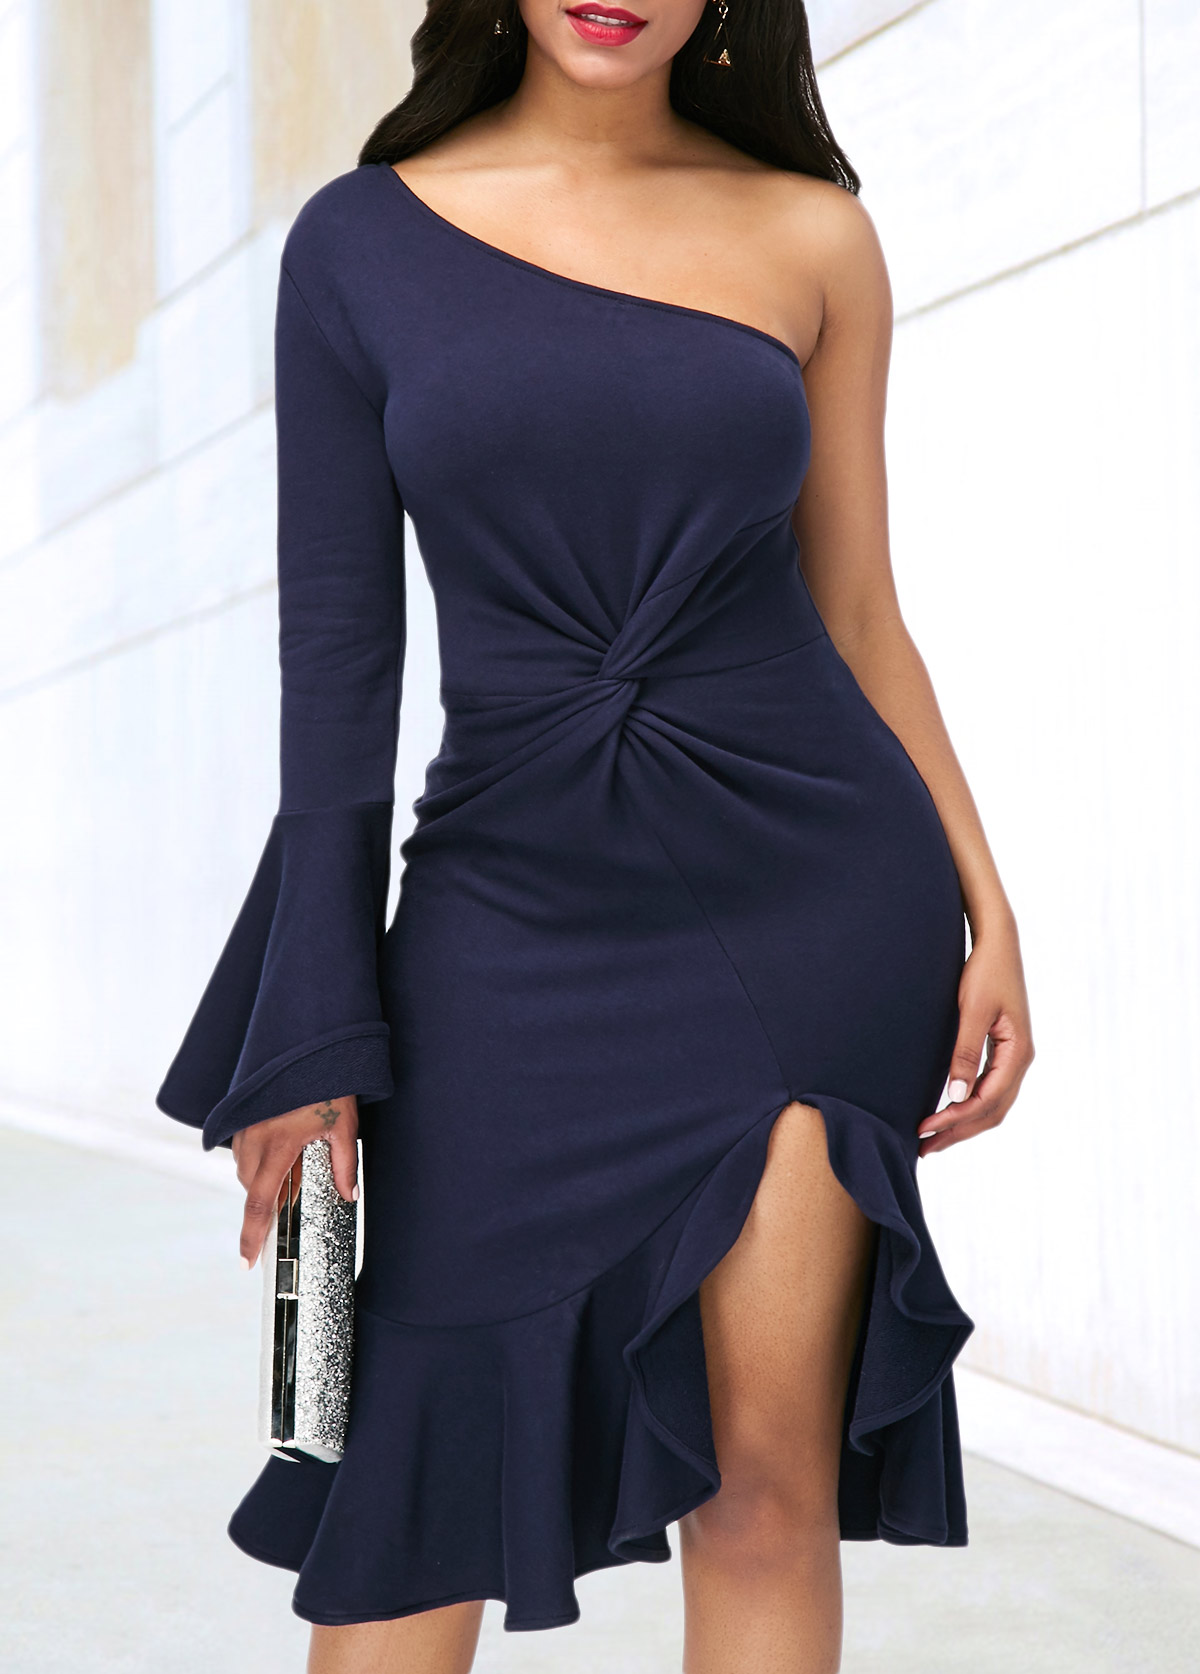 One Sleeve Skew Neck Side Slit Dress